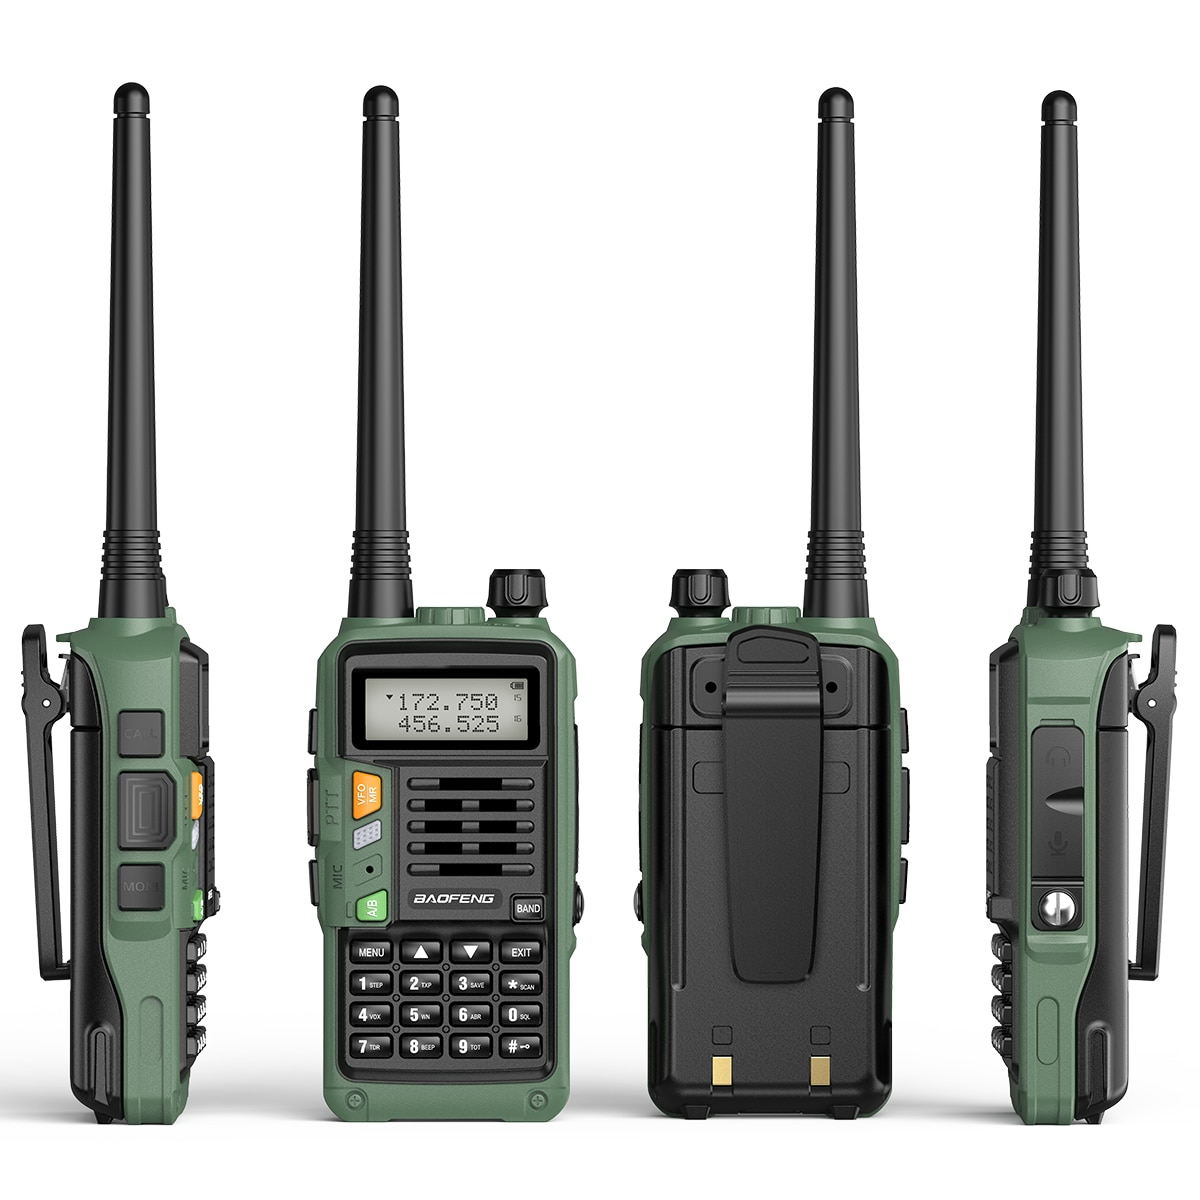 2021 NEW BaoFeng UV-S9 Plus Powerful Walkie Talkie CB Radio Transceiver 10W 50 KM Long Range Portable For hunt forest upgrade enlarge